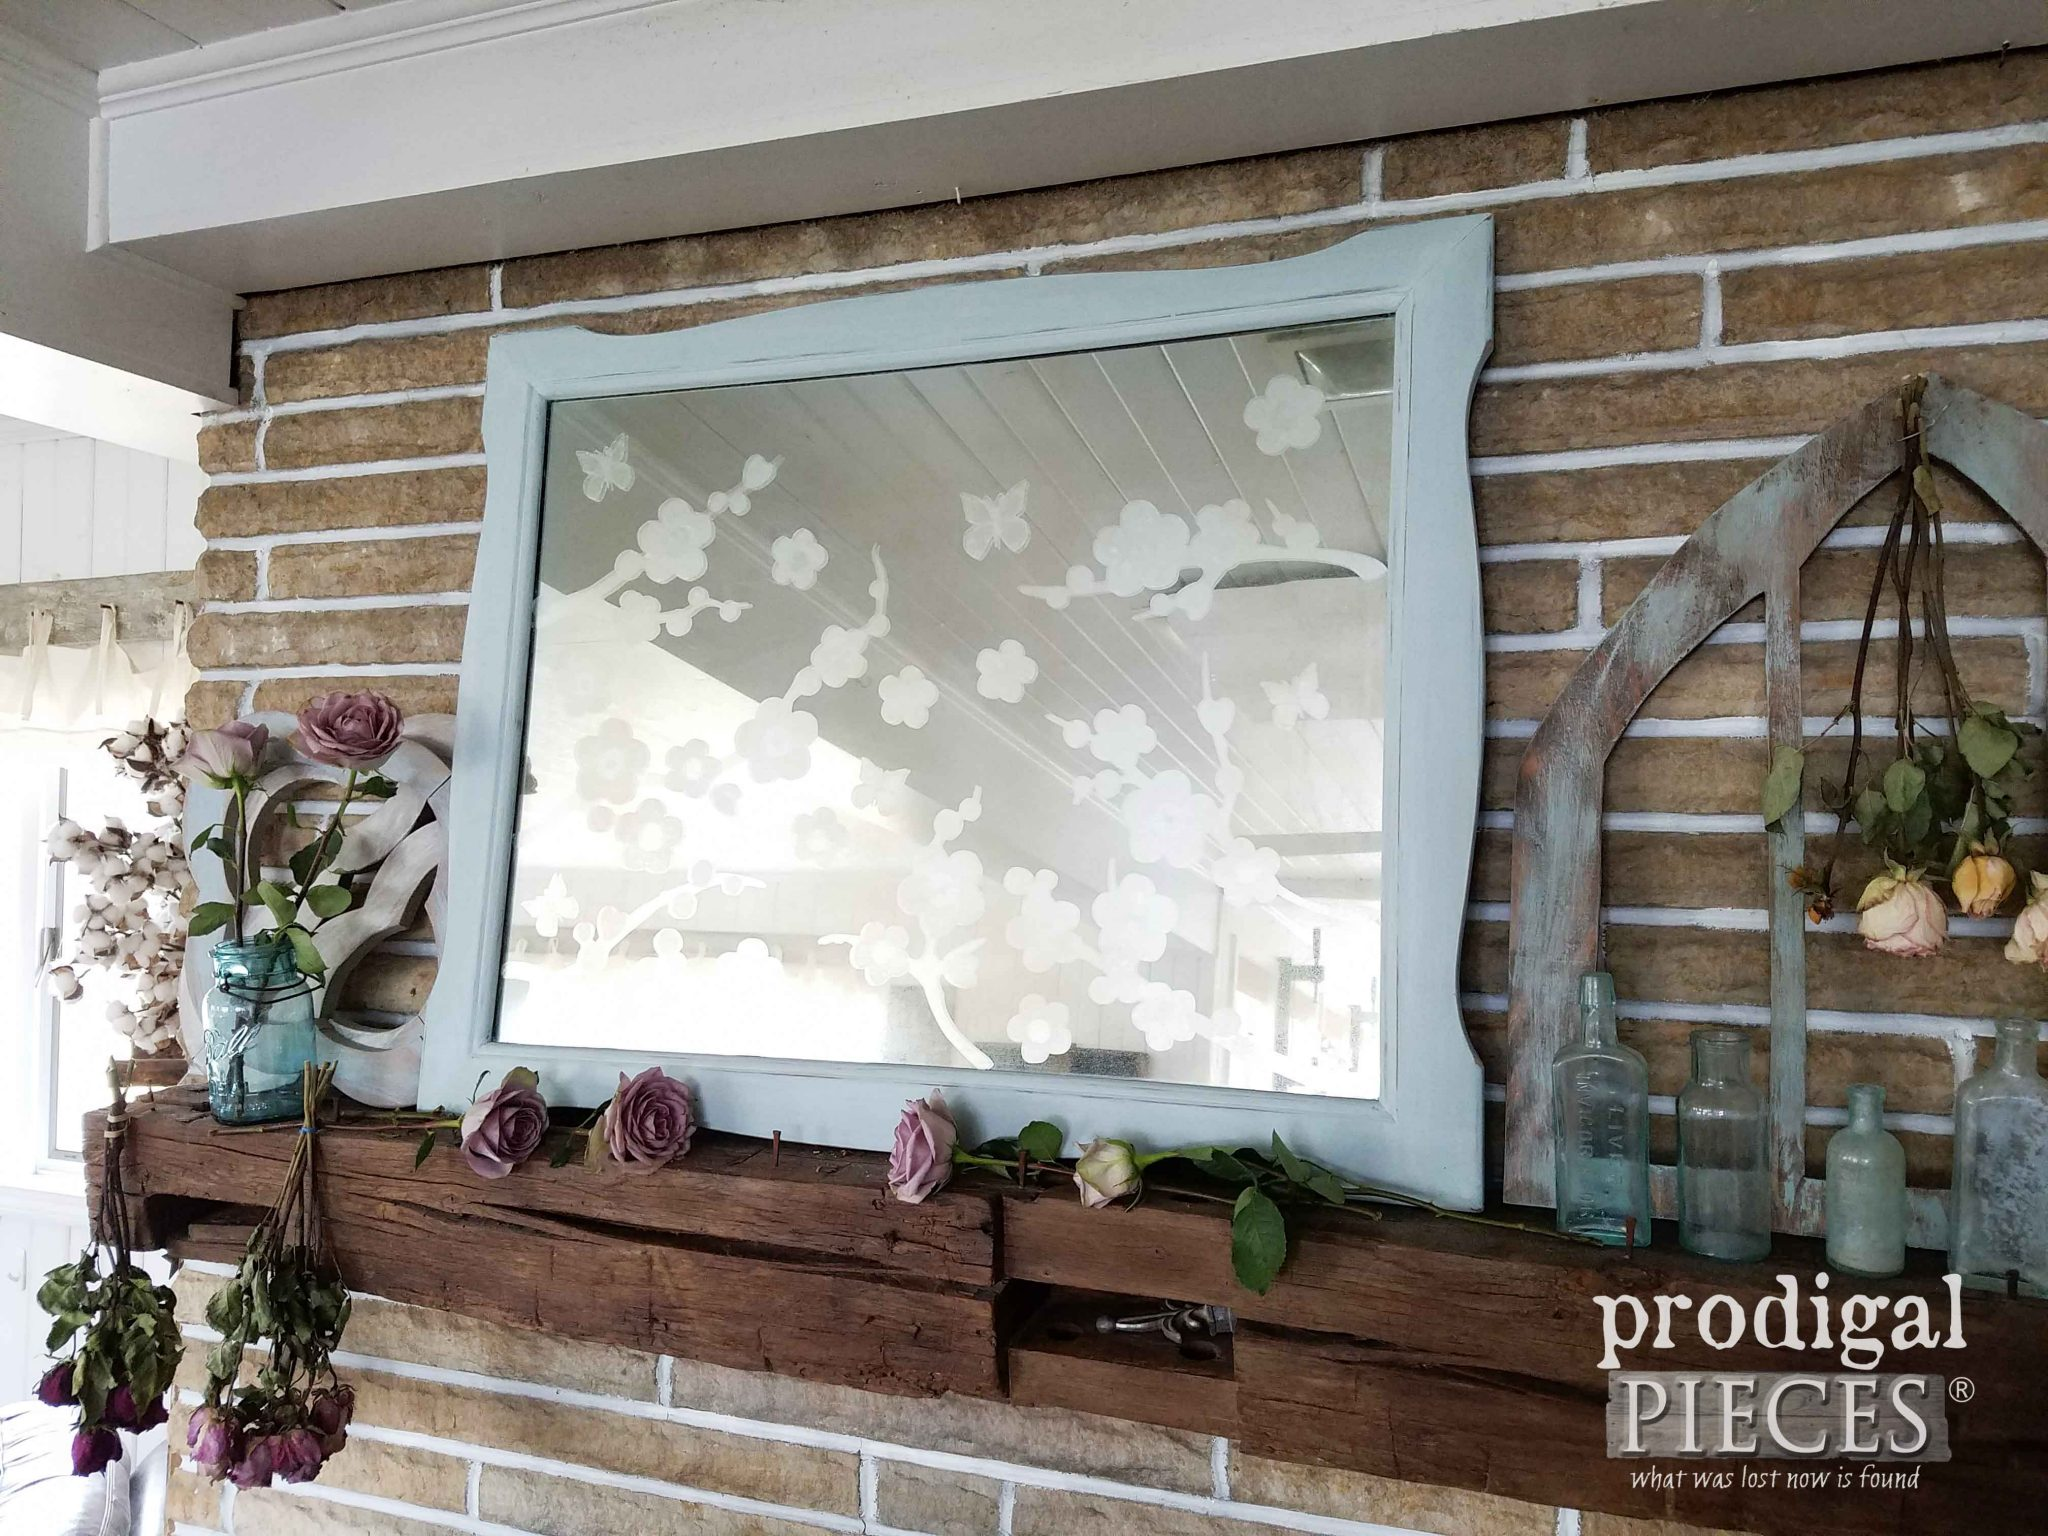 Vintage Dresser Mirror Upcyled by Prodigal Pieces | prodigalpieces.com